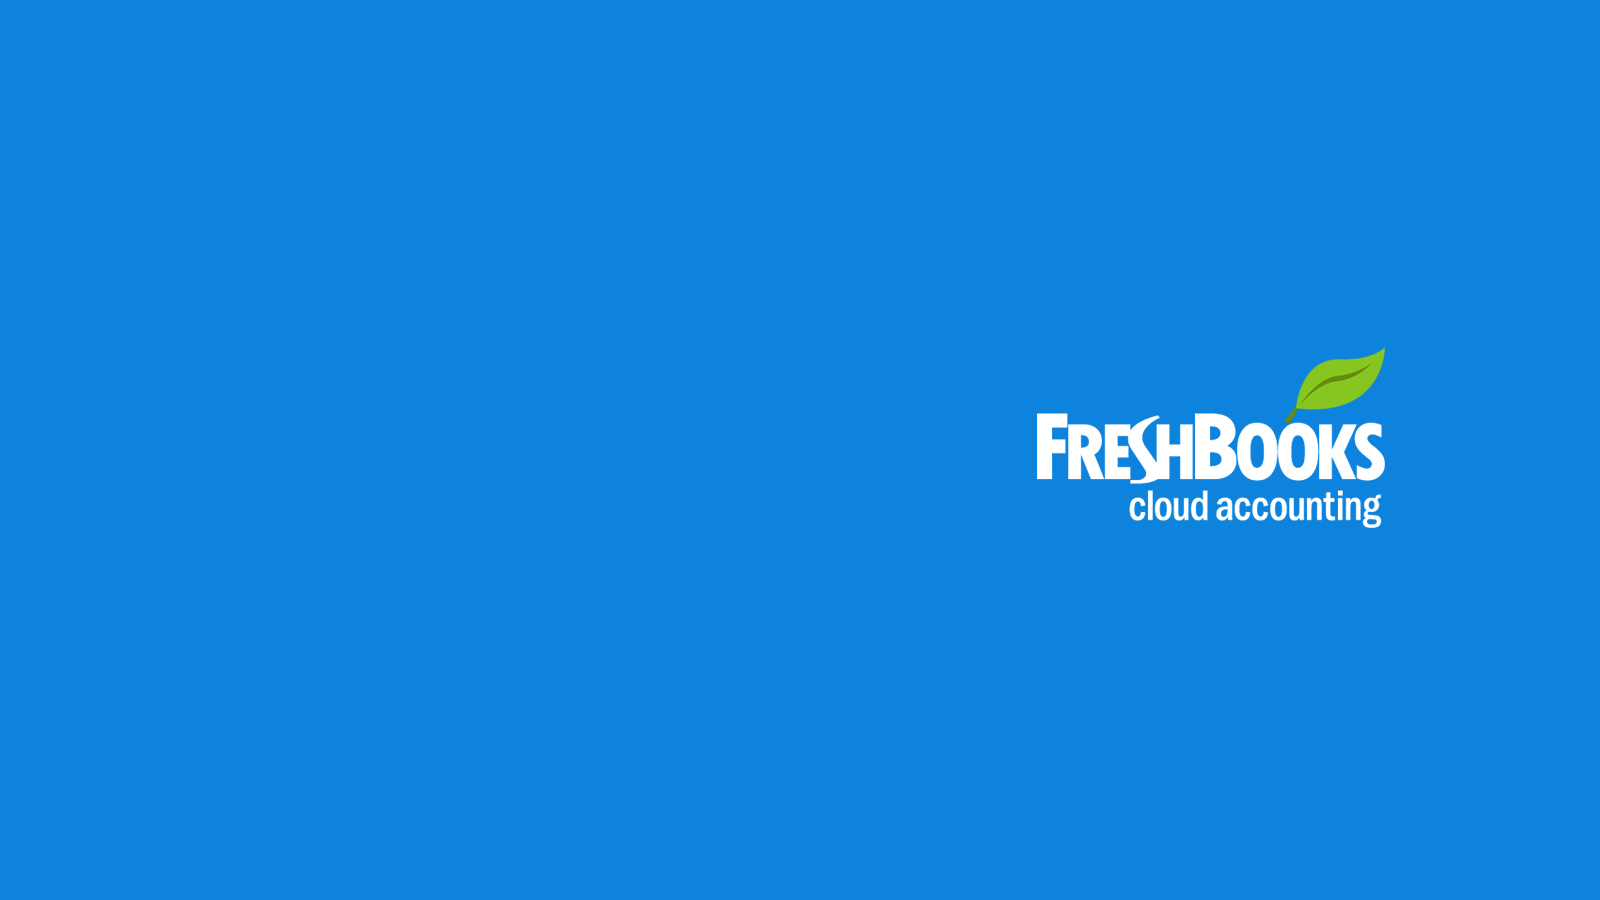 FreshBooks Cloud Accounting logo.